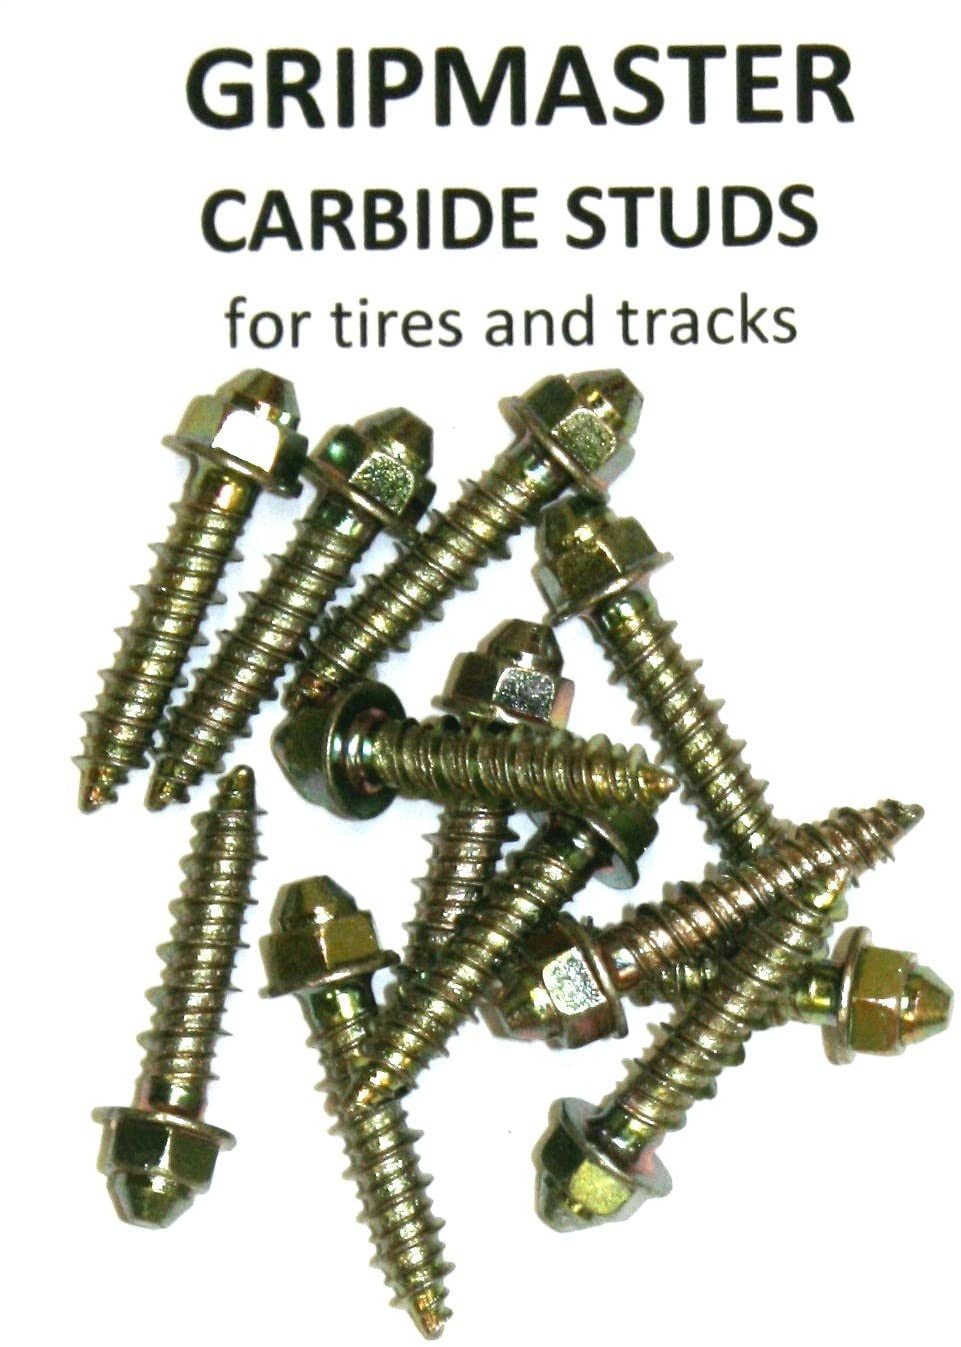 INS Products, GRIPMASTER Carbide Track and TIRE Studs w/Tool - 1 inch Length, Improves Traction, Carbide Strength, for Cars, Trucks, Skidsteers, Loaders & Tractors, 100-250 - 500 Packs